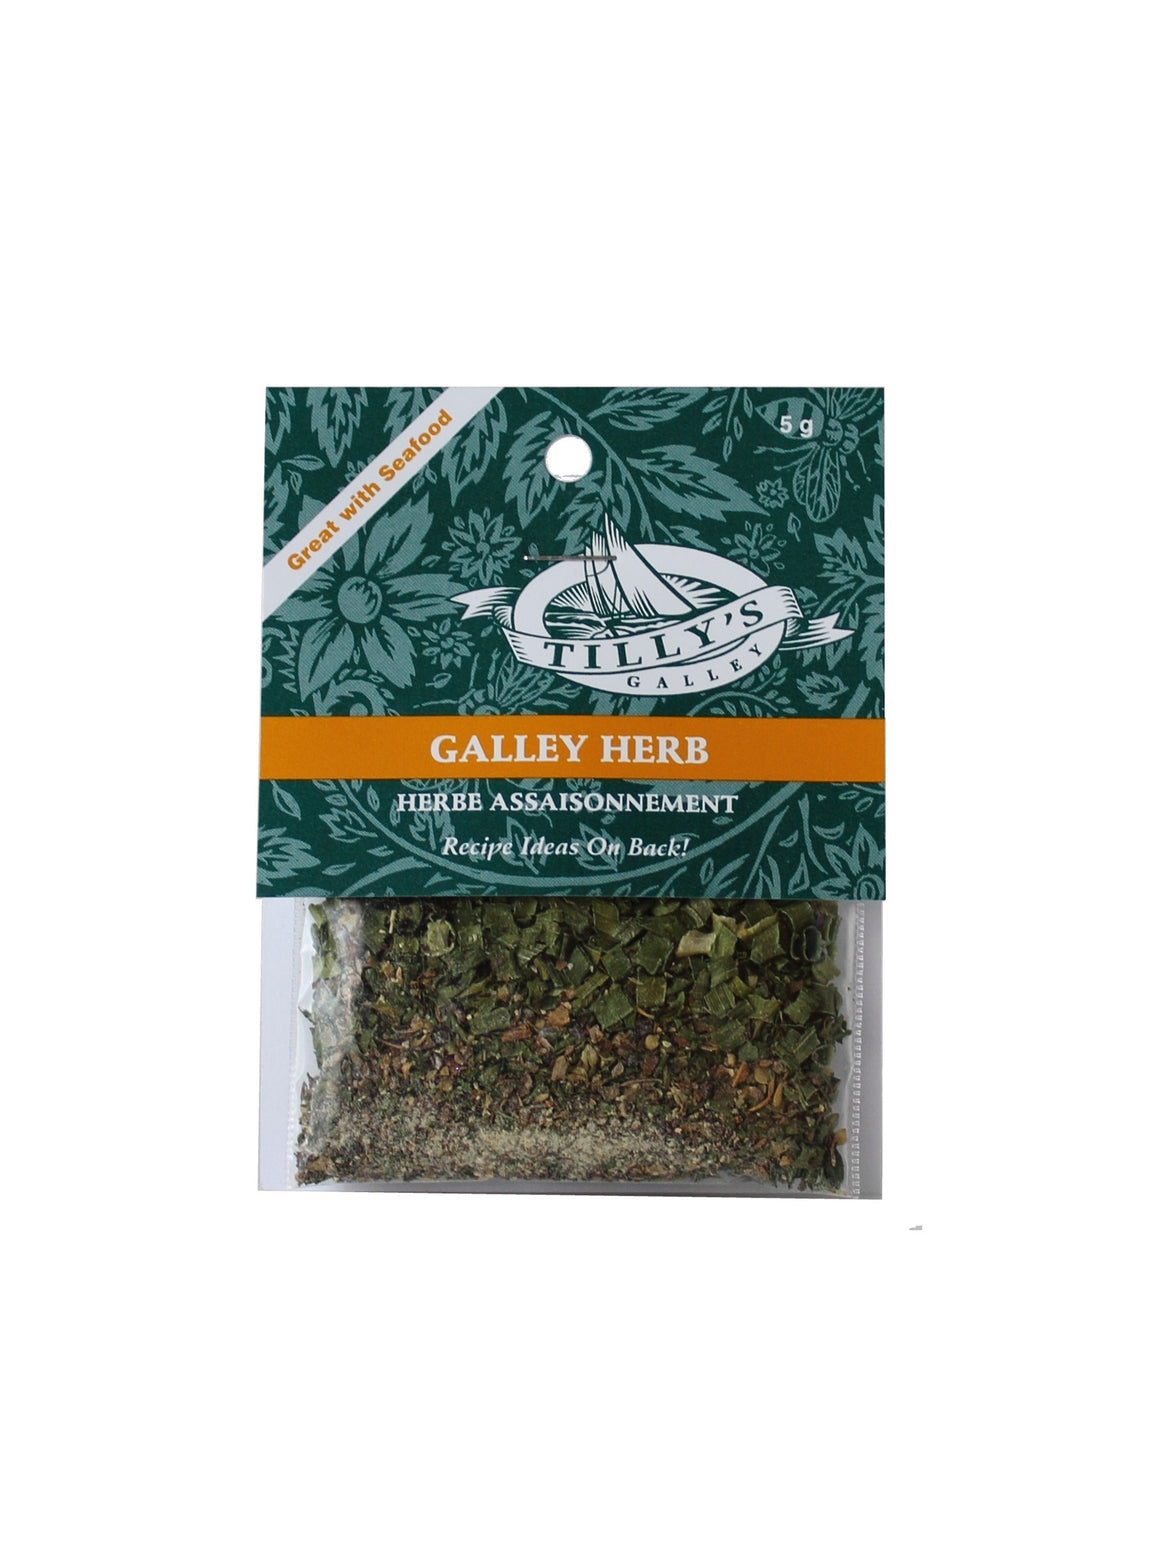 Galley Herb Spice Blend